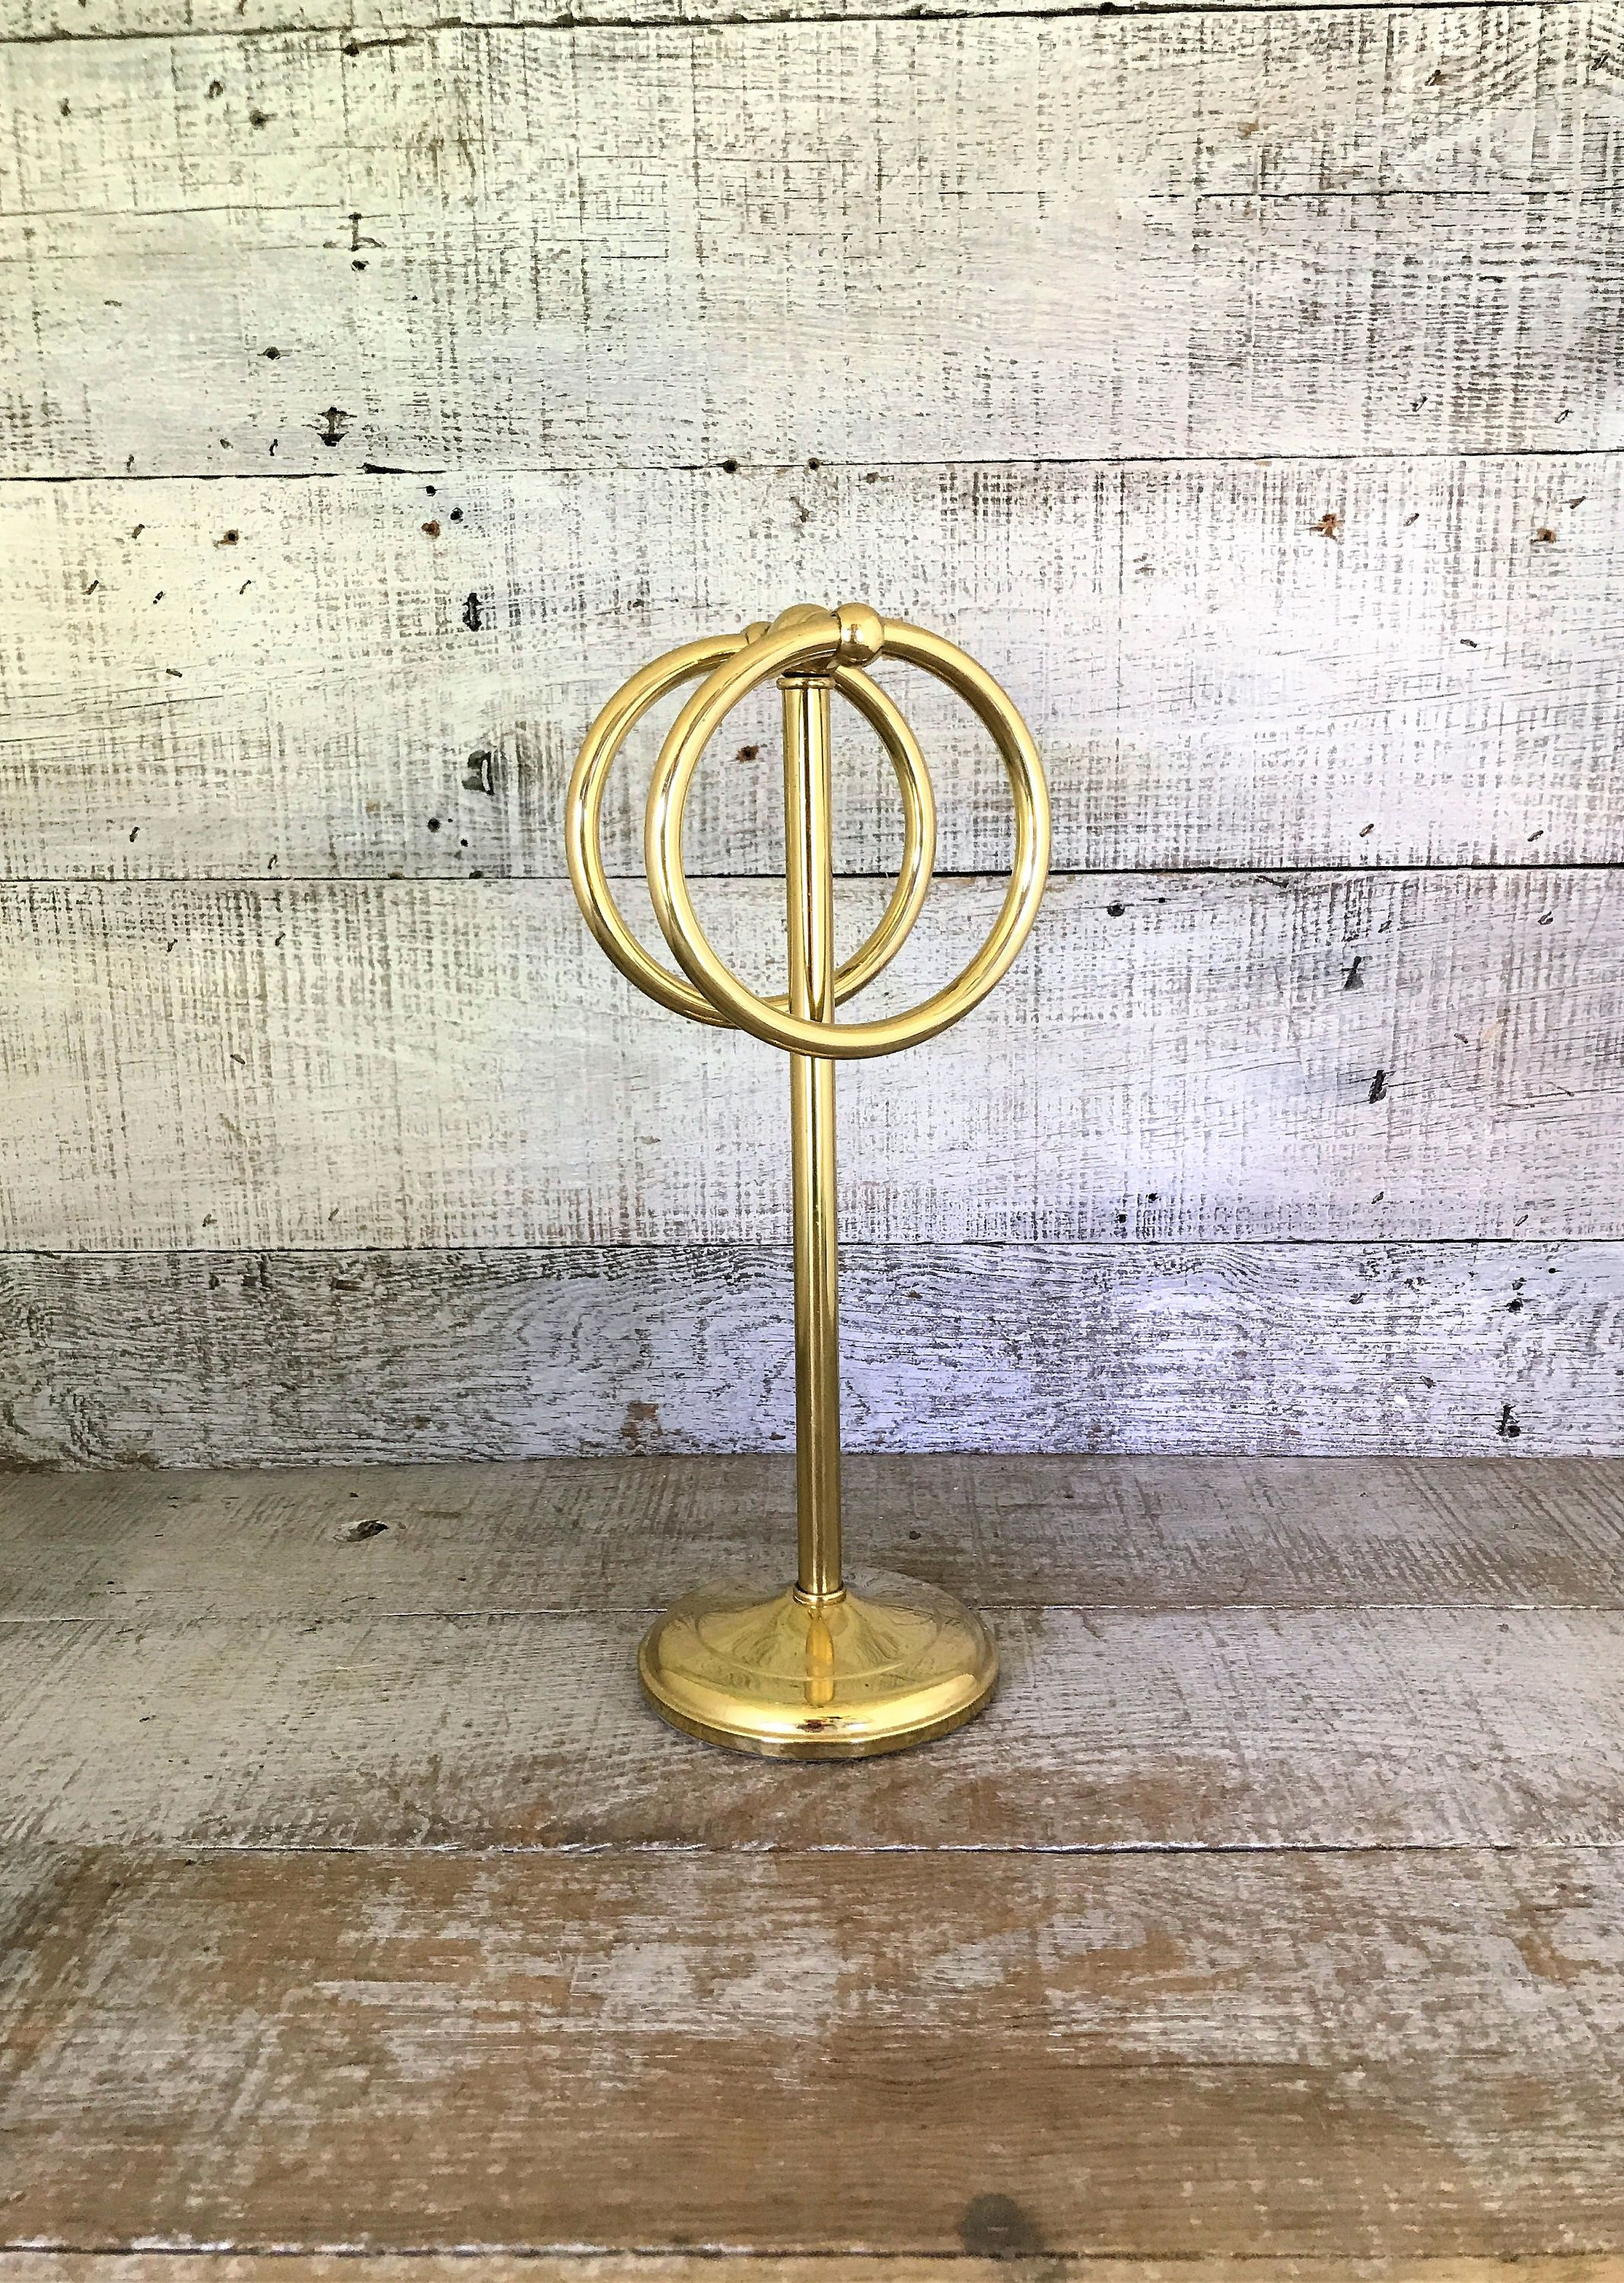 Towel Stand Towel Holder Brass Towel Stand Hand Towel Stand Gold Towel Ring Adjustable Dual Rings Mid Centu Hand Towel Stand Towel Holder Hand Towels